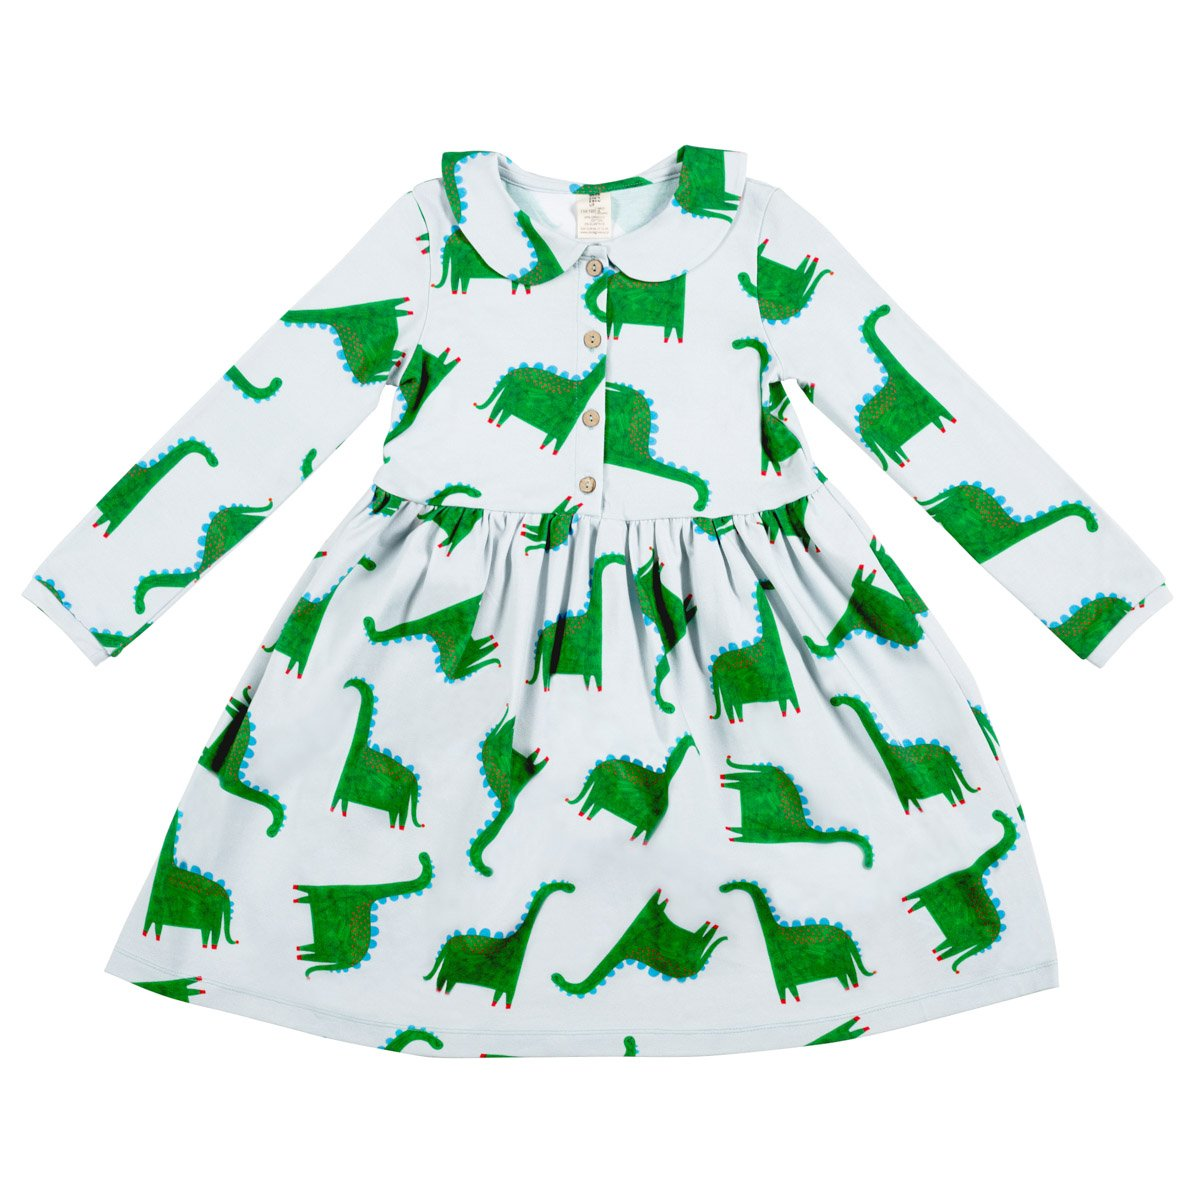 65 Million Years In The Making Collared Dress by Don't Grow Up